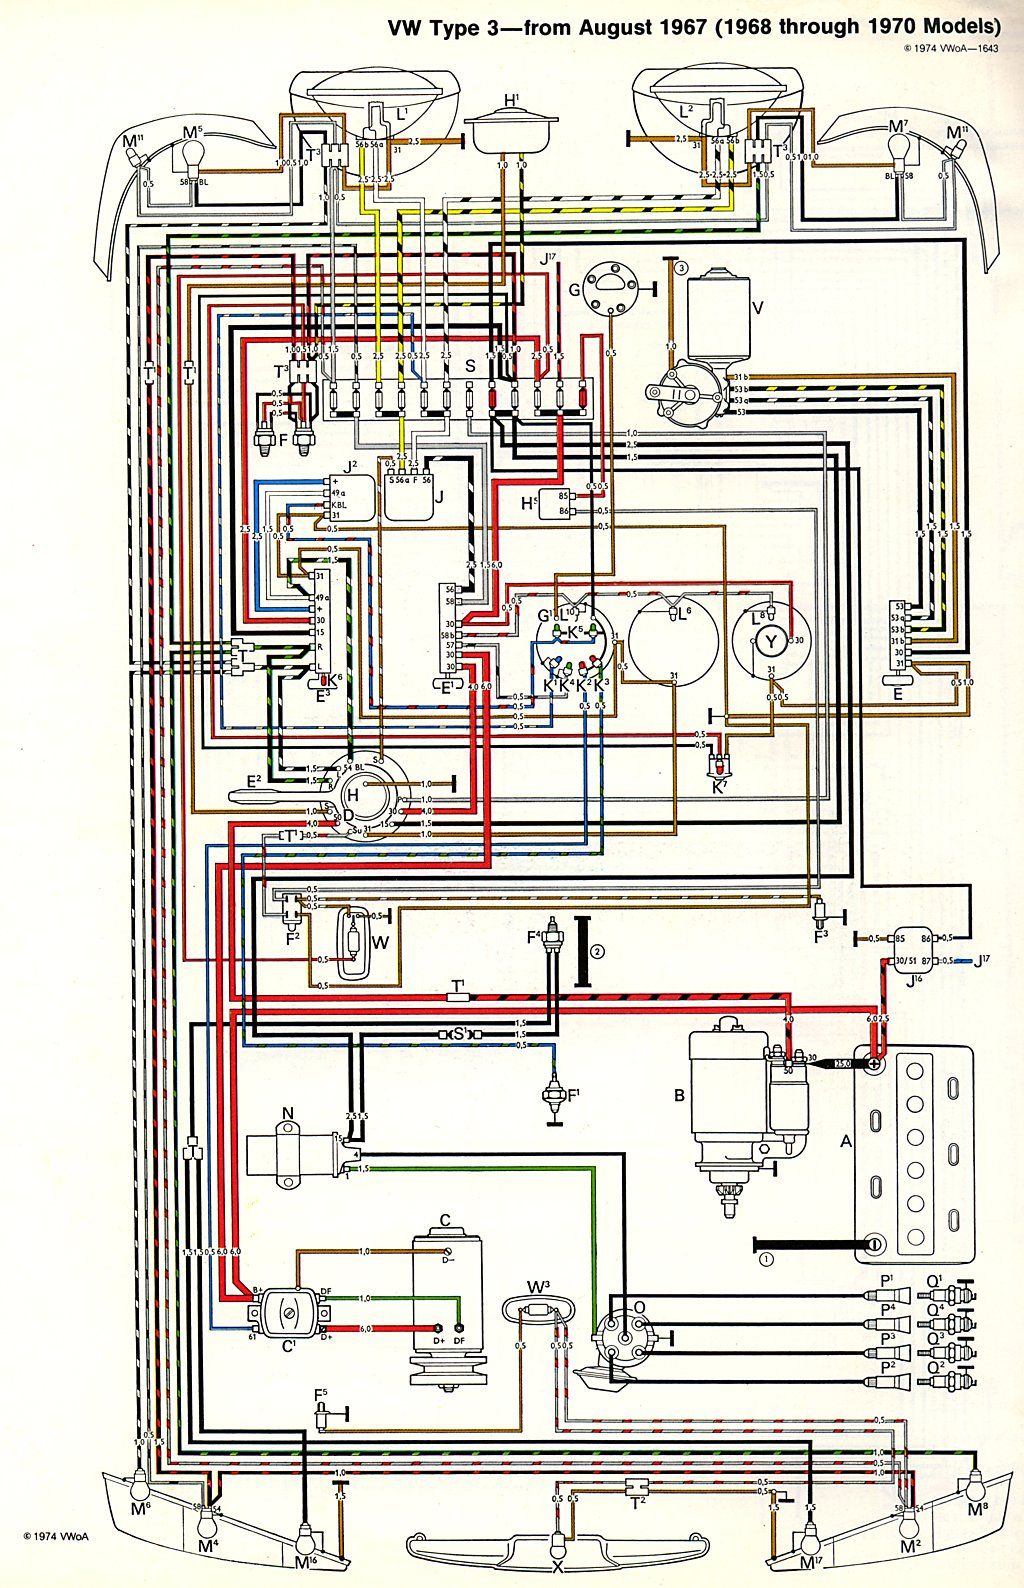 type3_6870 vw thing wiring diagram 1974 beetle heater diagram \u2022 wiring Wiring Harness Diagram at sewacar.co